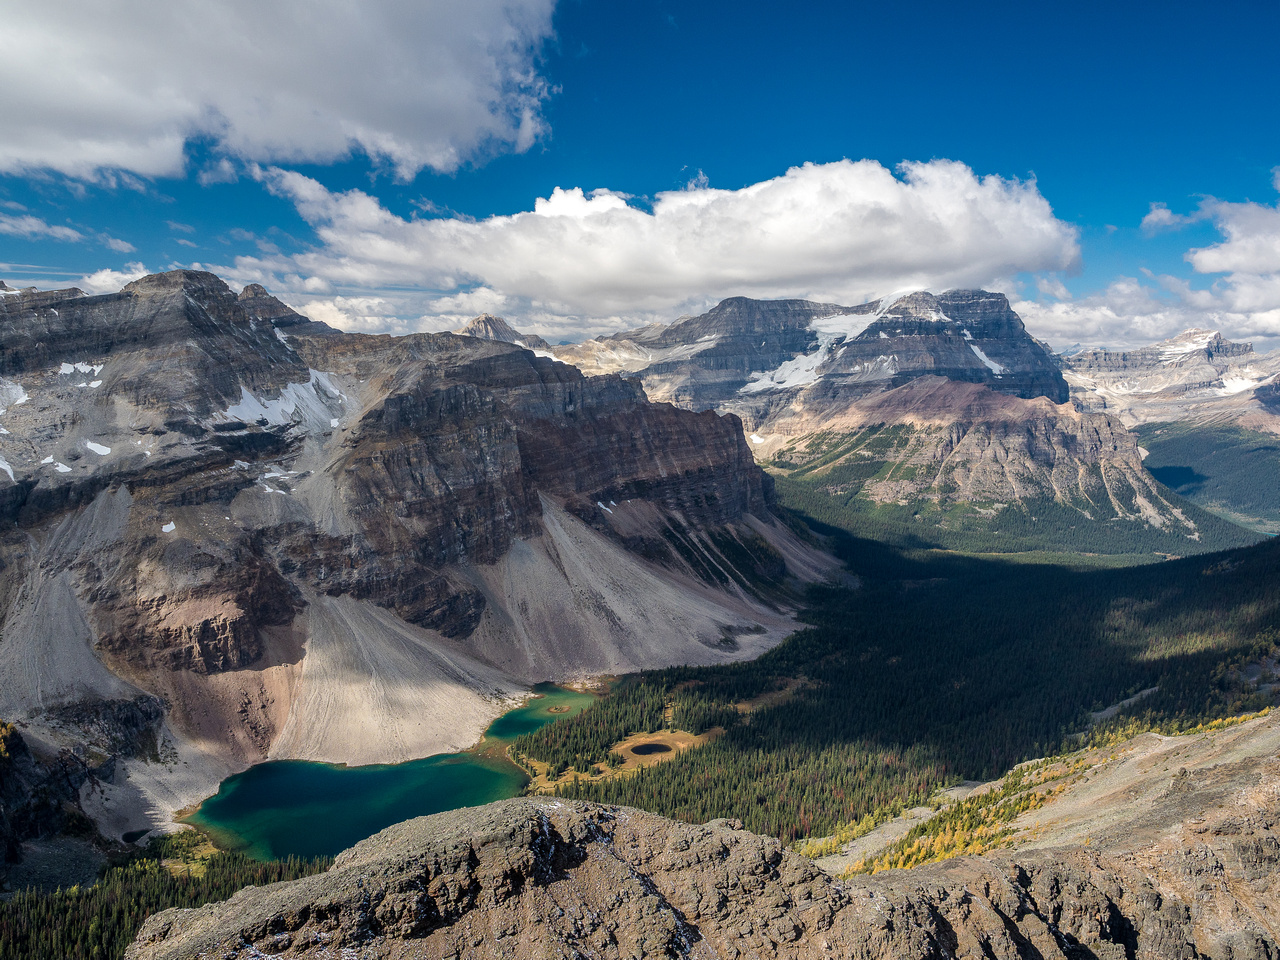 I had to traverse the summit block a bit to get Haiduk Lake on the shot. Mount Ball at right.